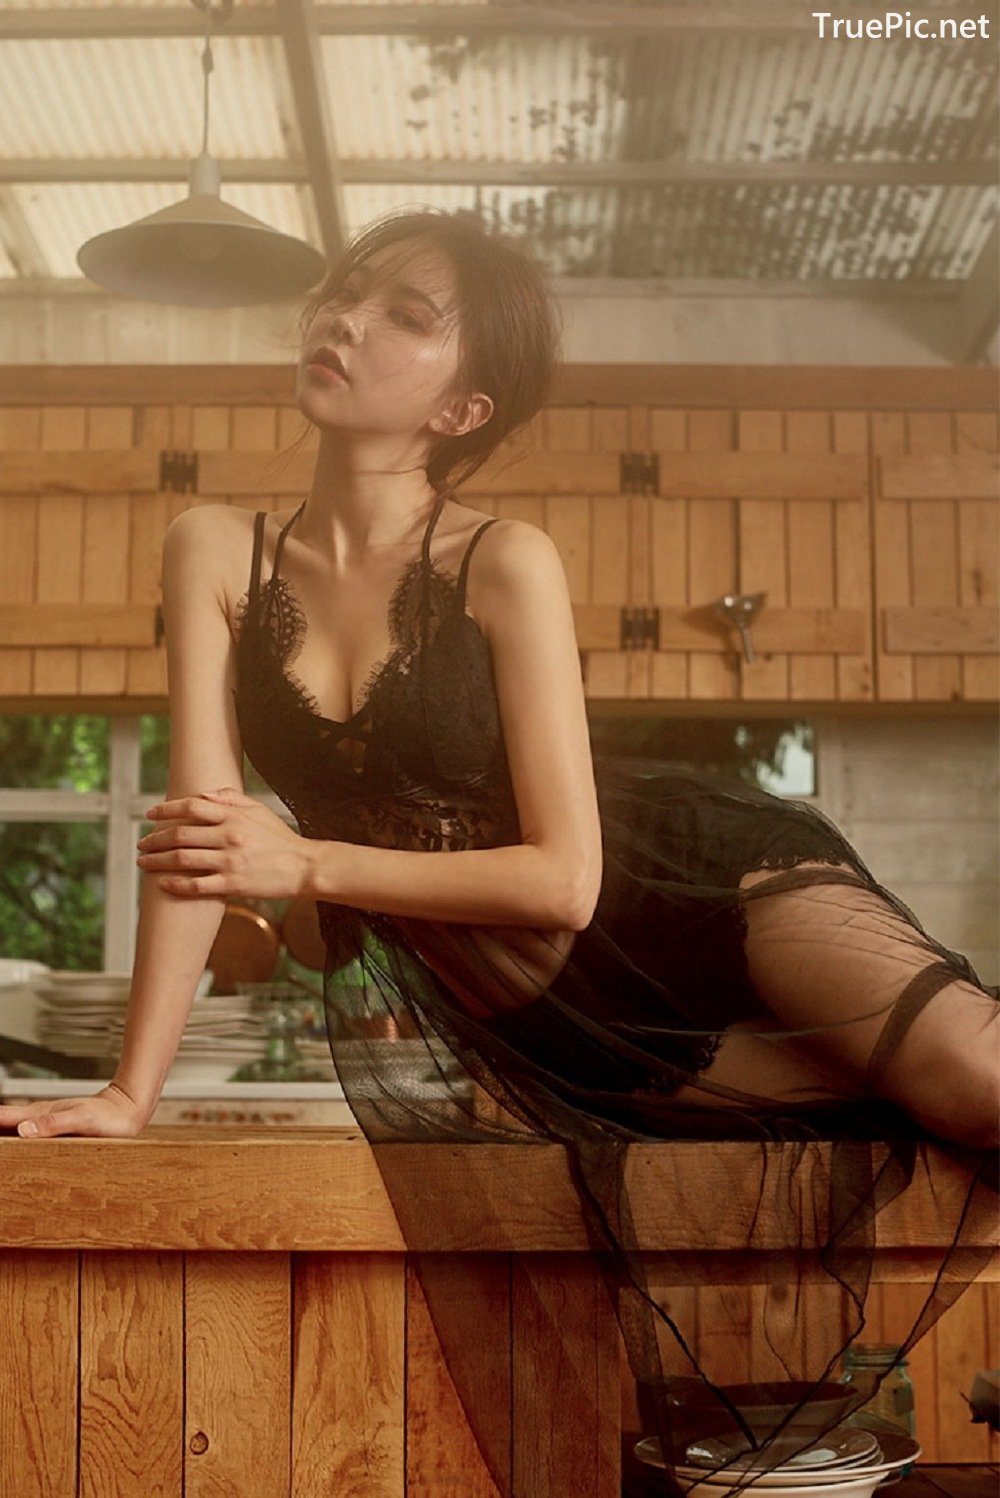 Image-Park-Soo-Yeon-Black-Red-and-White-Lingerie-Korean-Model-Fashion-TruePic.net- Picture-9